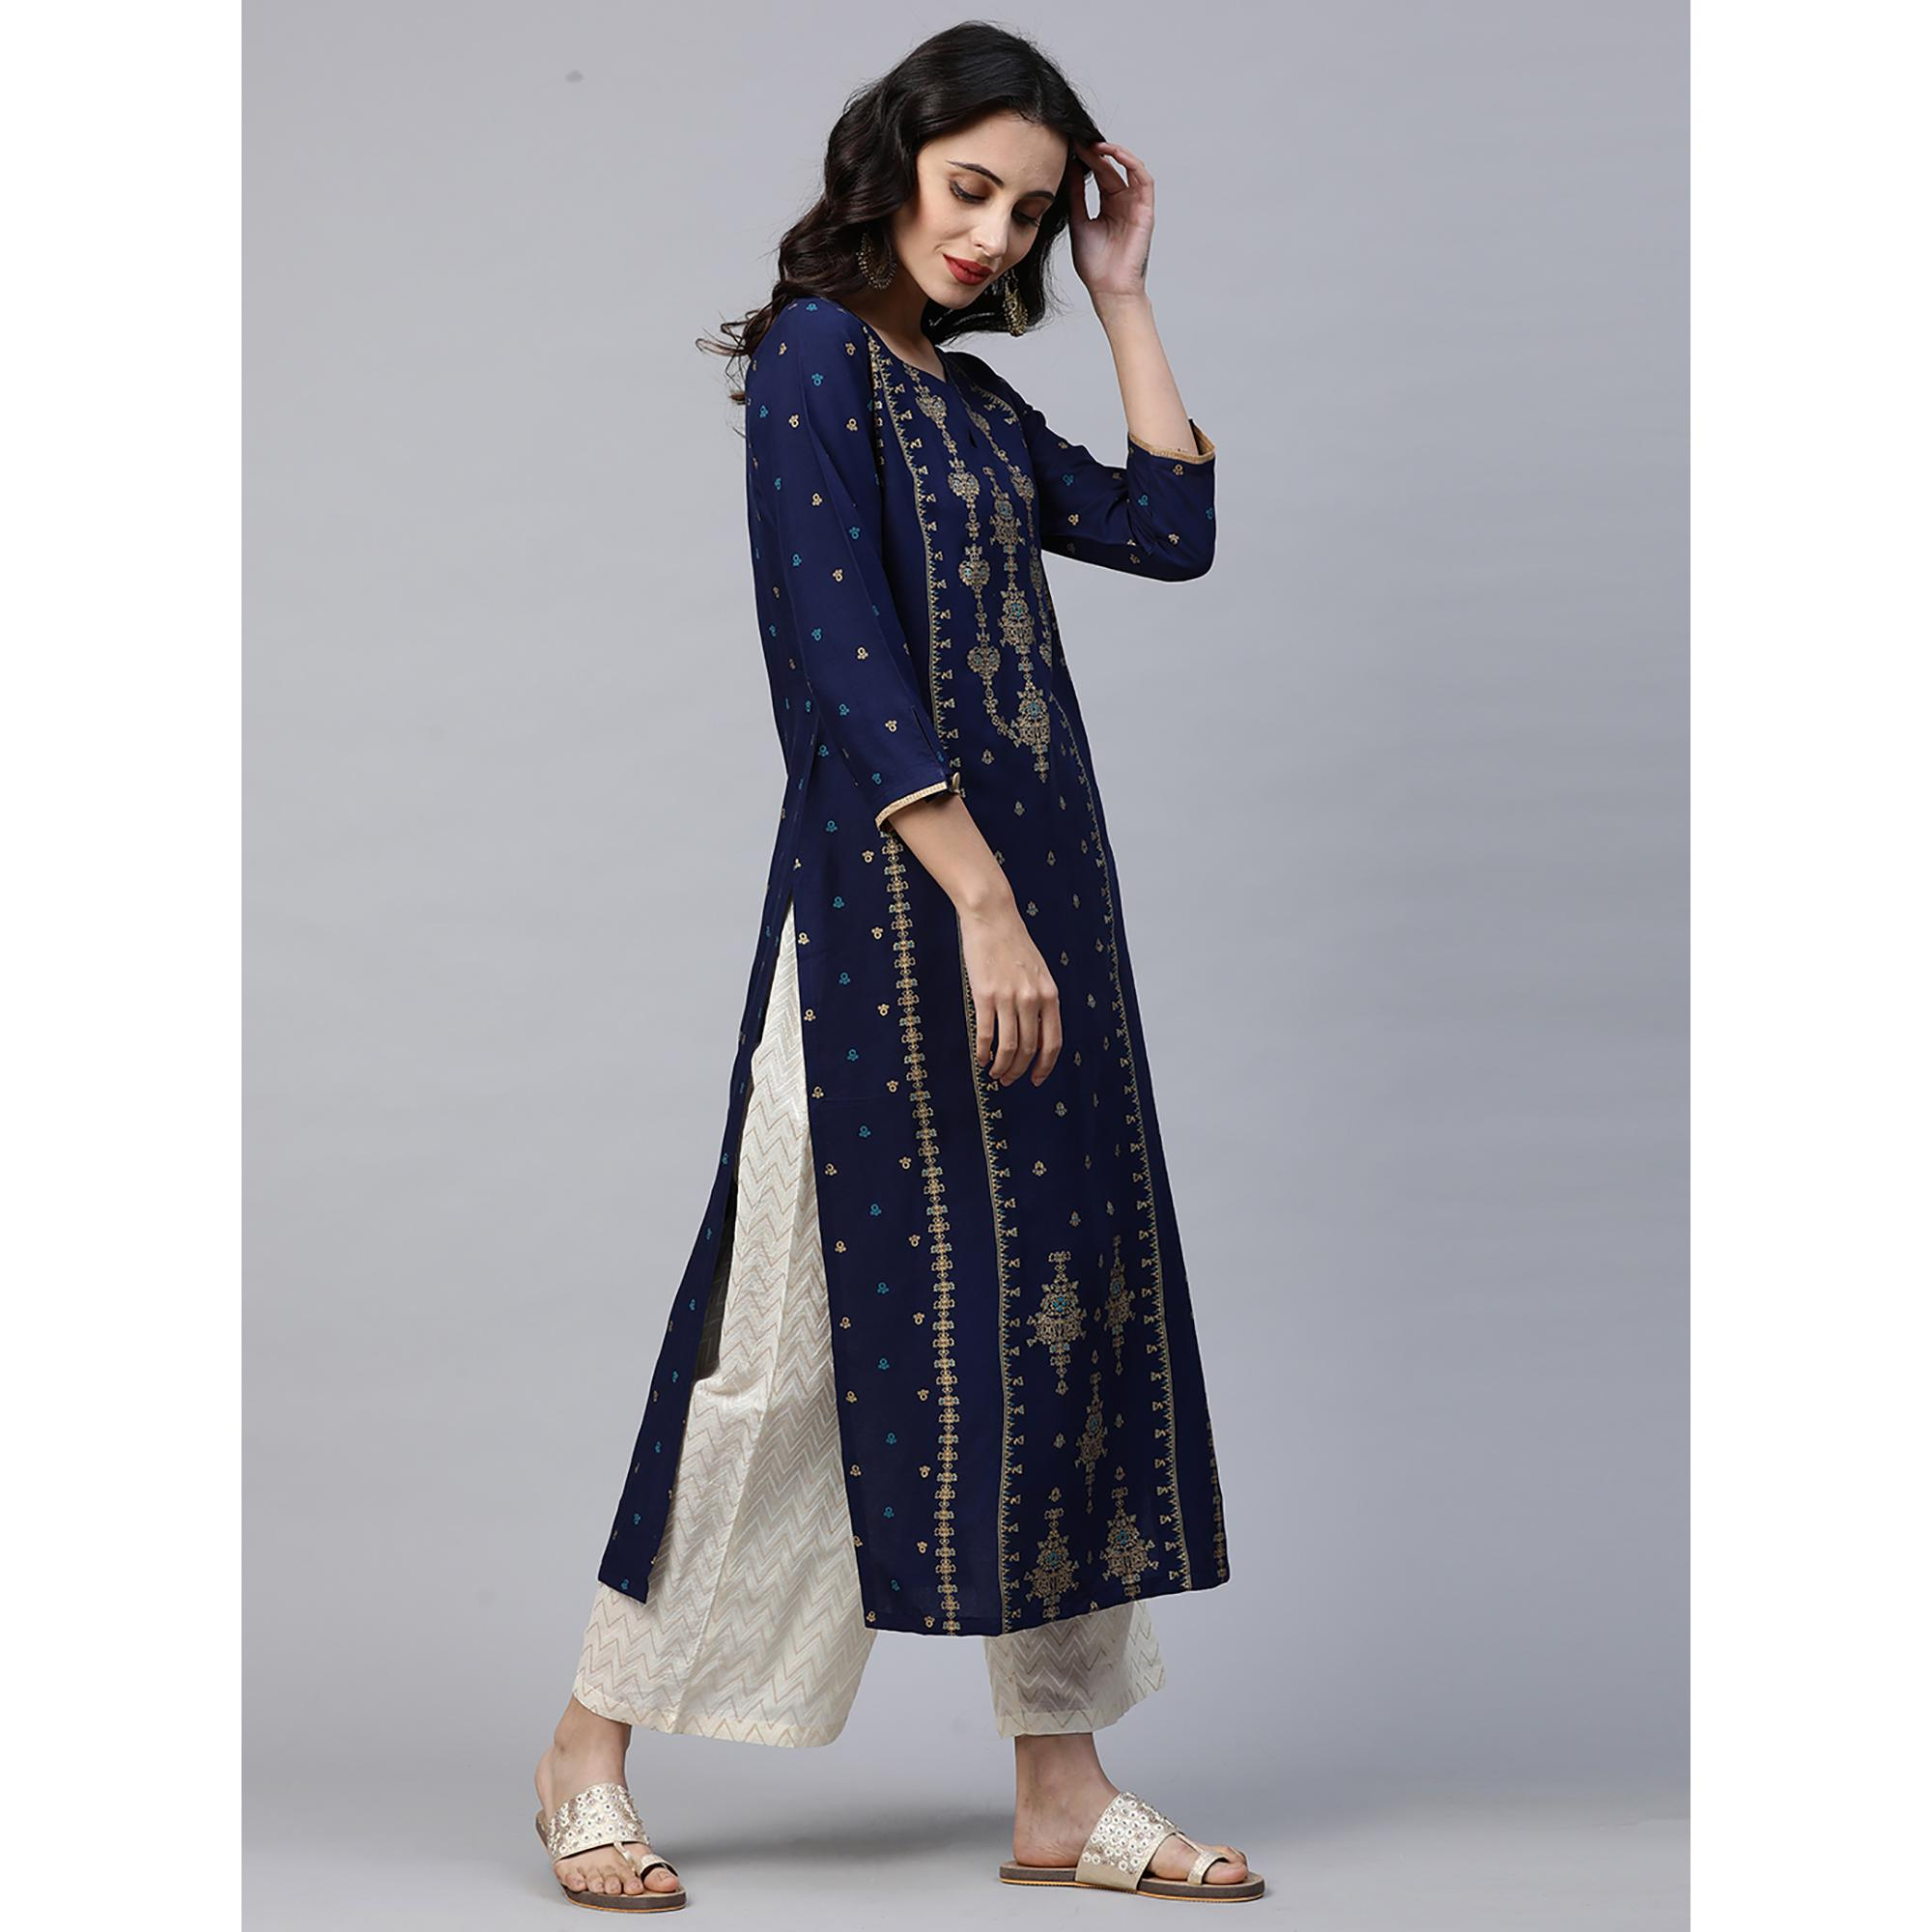 Indo Era - Blue Foil Printed Straight Kurtas